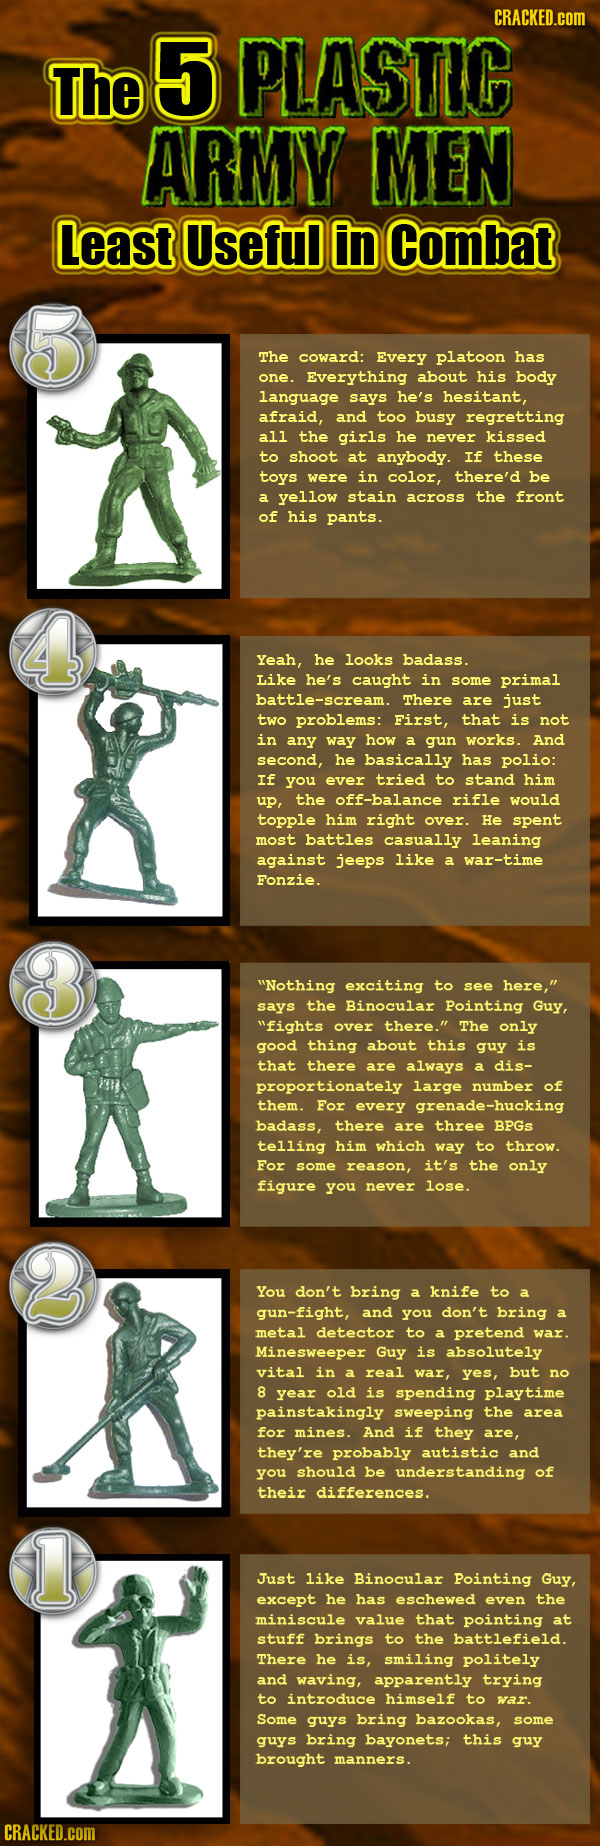 The 5 Plastic Army Men Least Useful in Combat